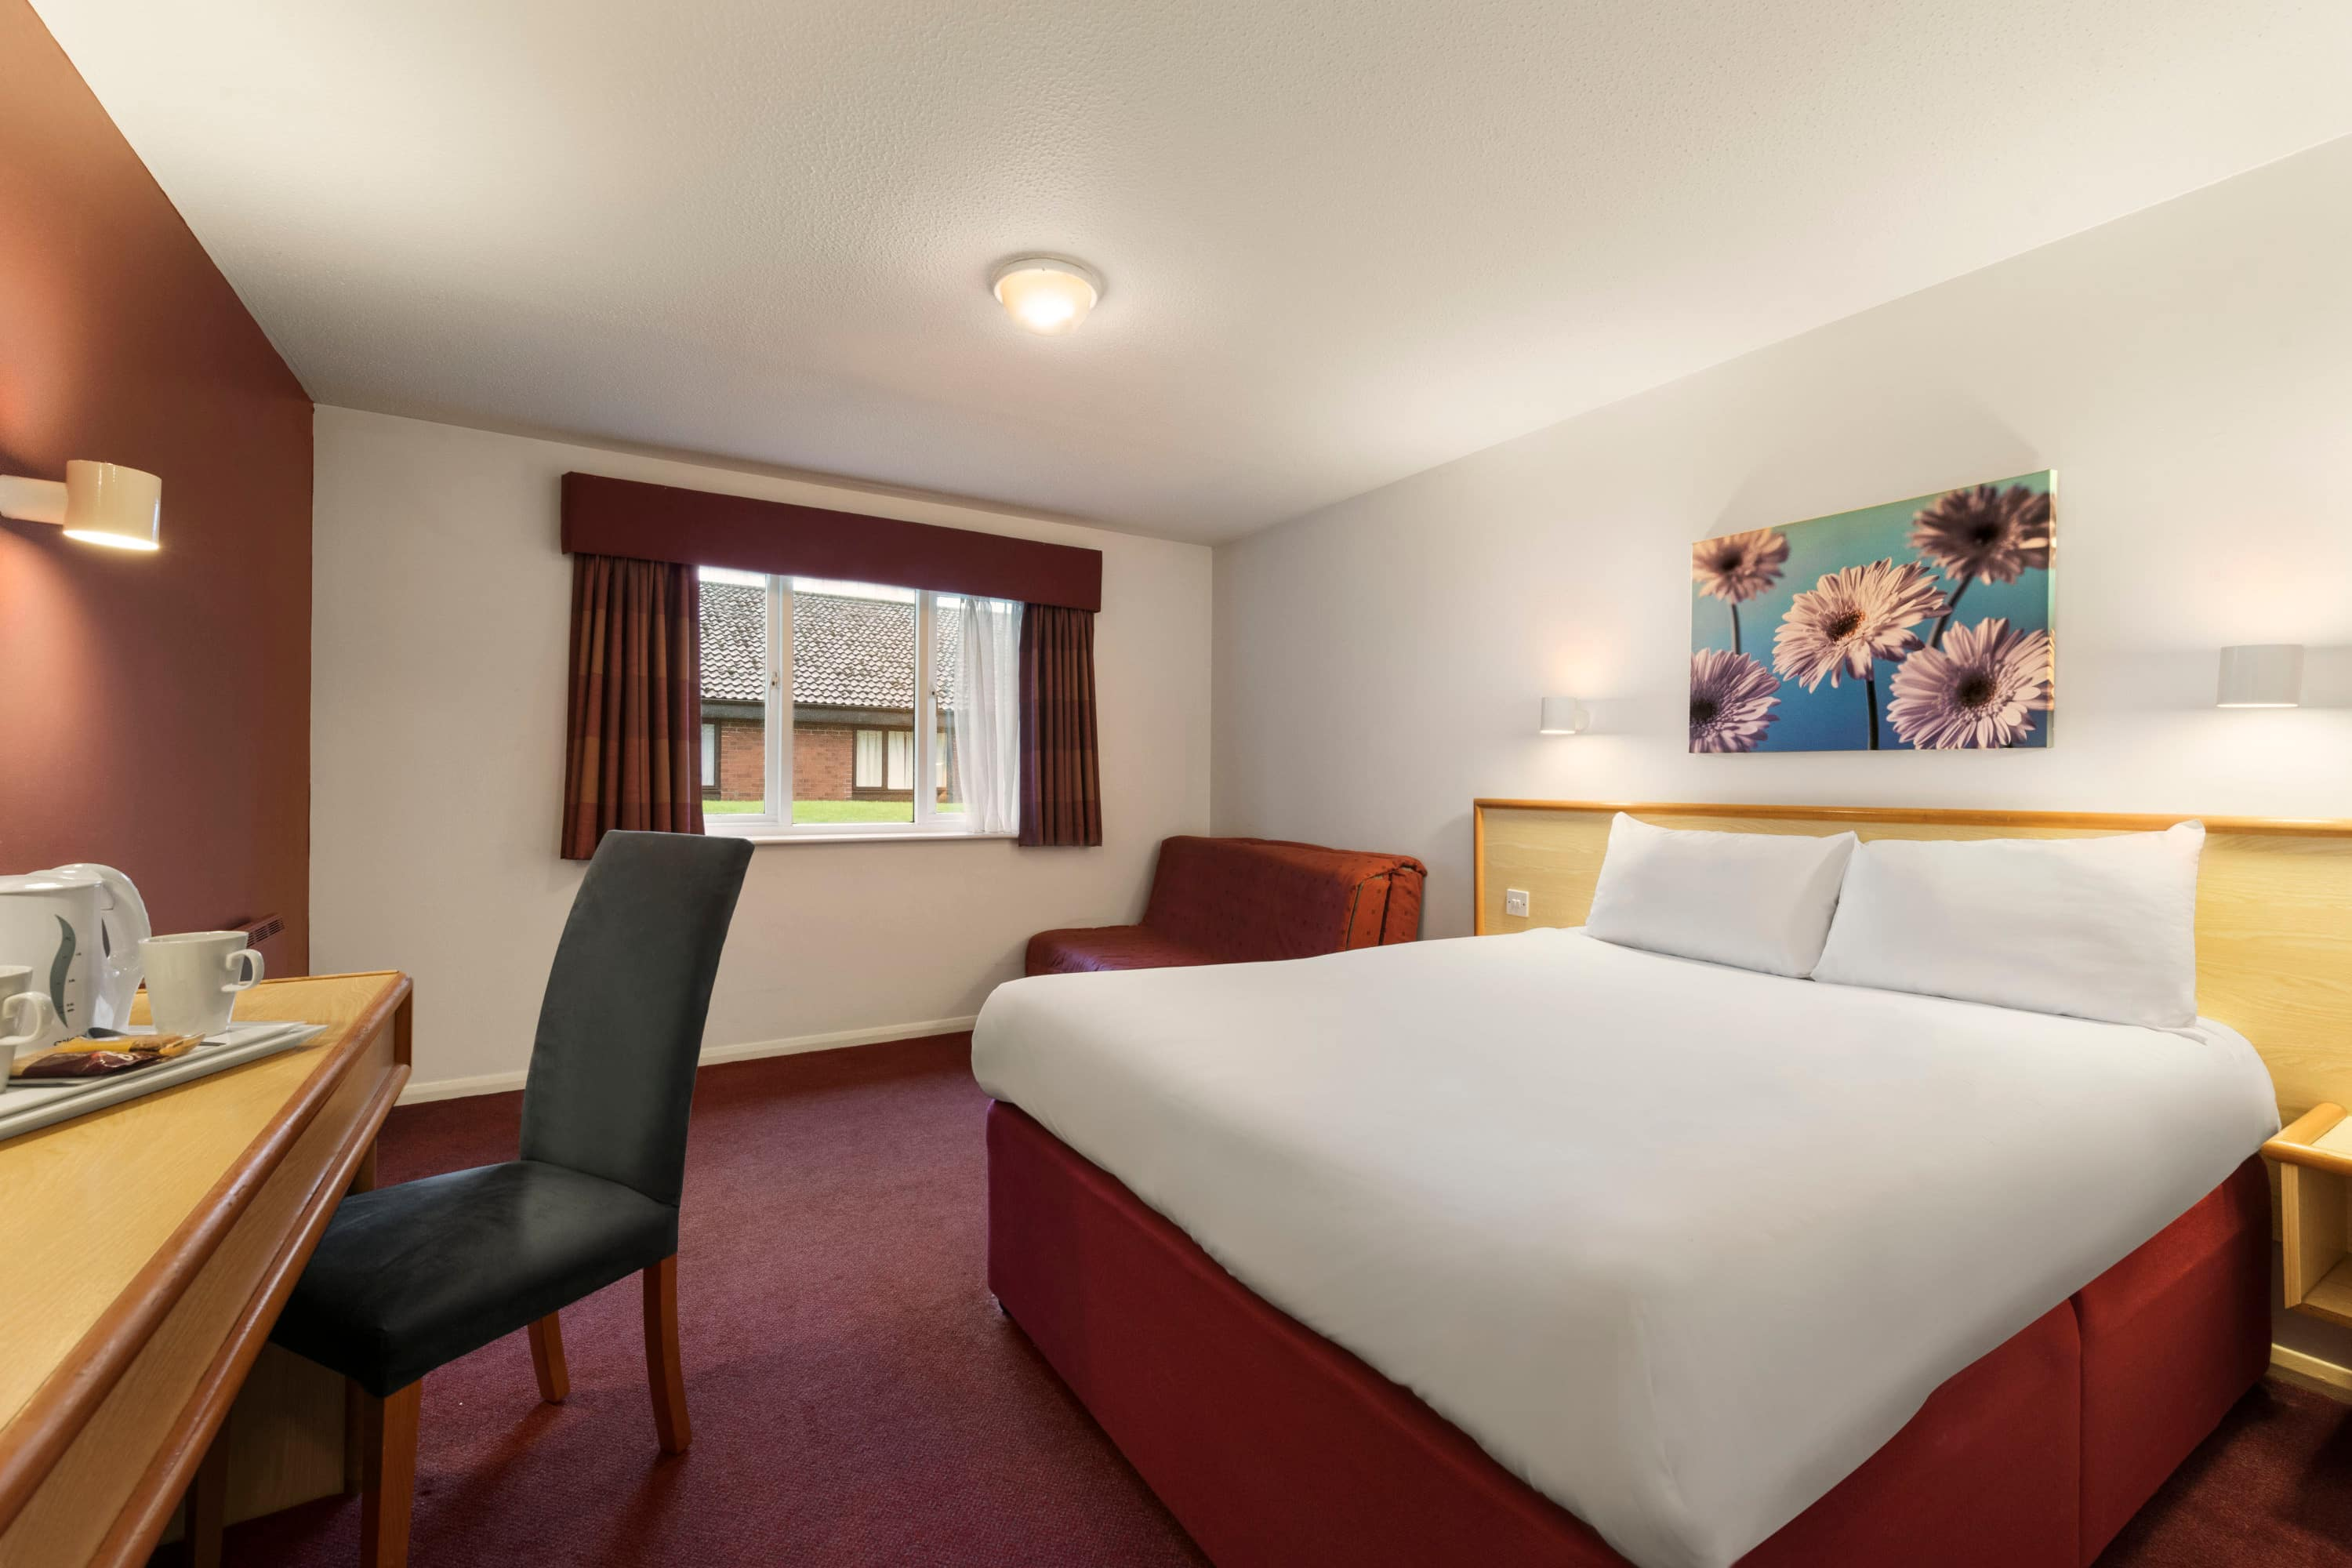 Guest room at the Days Inn Gretna Green M74 in Gretna Green, Other than US/Canada